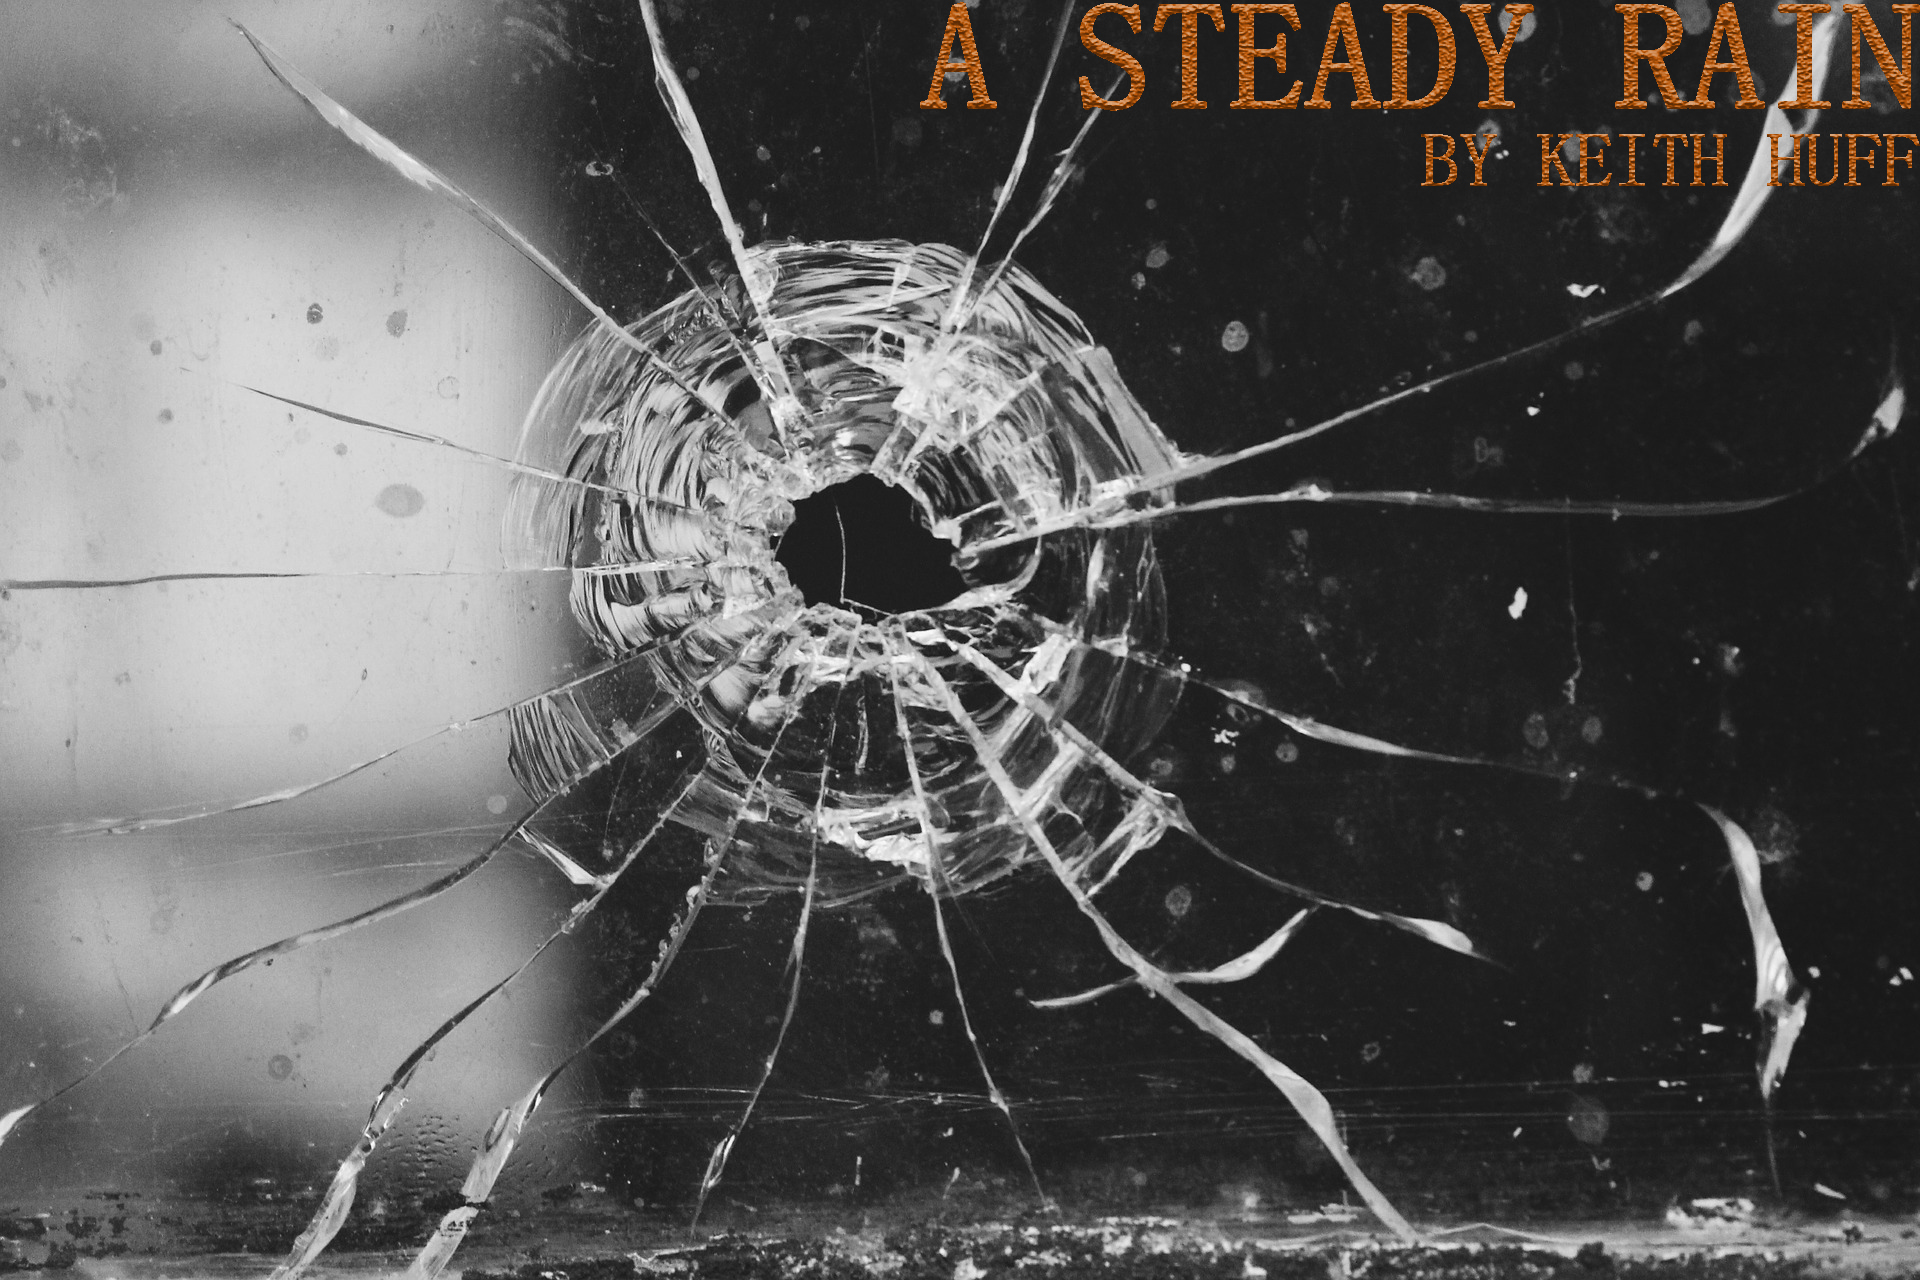 A Steady Rain - by Keith HuffMay 31, 2019 - June 16, 2019A dark duologue filled with sharp storytelling and biting repartee, A Steady Rain explores the complexities of a lifelong bond tainted by domestic affairs, violence, and the rough streets of Chicago. A harrowing journey into a moral gray area where trust and loyalty struggle for survival against a sobering backdrop of pimps, prostitutes, and criminal lowlifes.A Steady Rain opened on Broadway in 2009 starring starring Hugh Jackman and Daniel Craig.